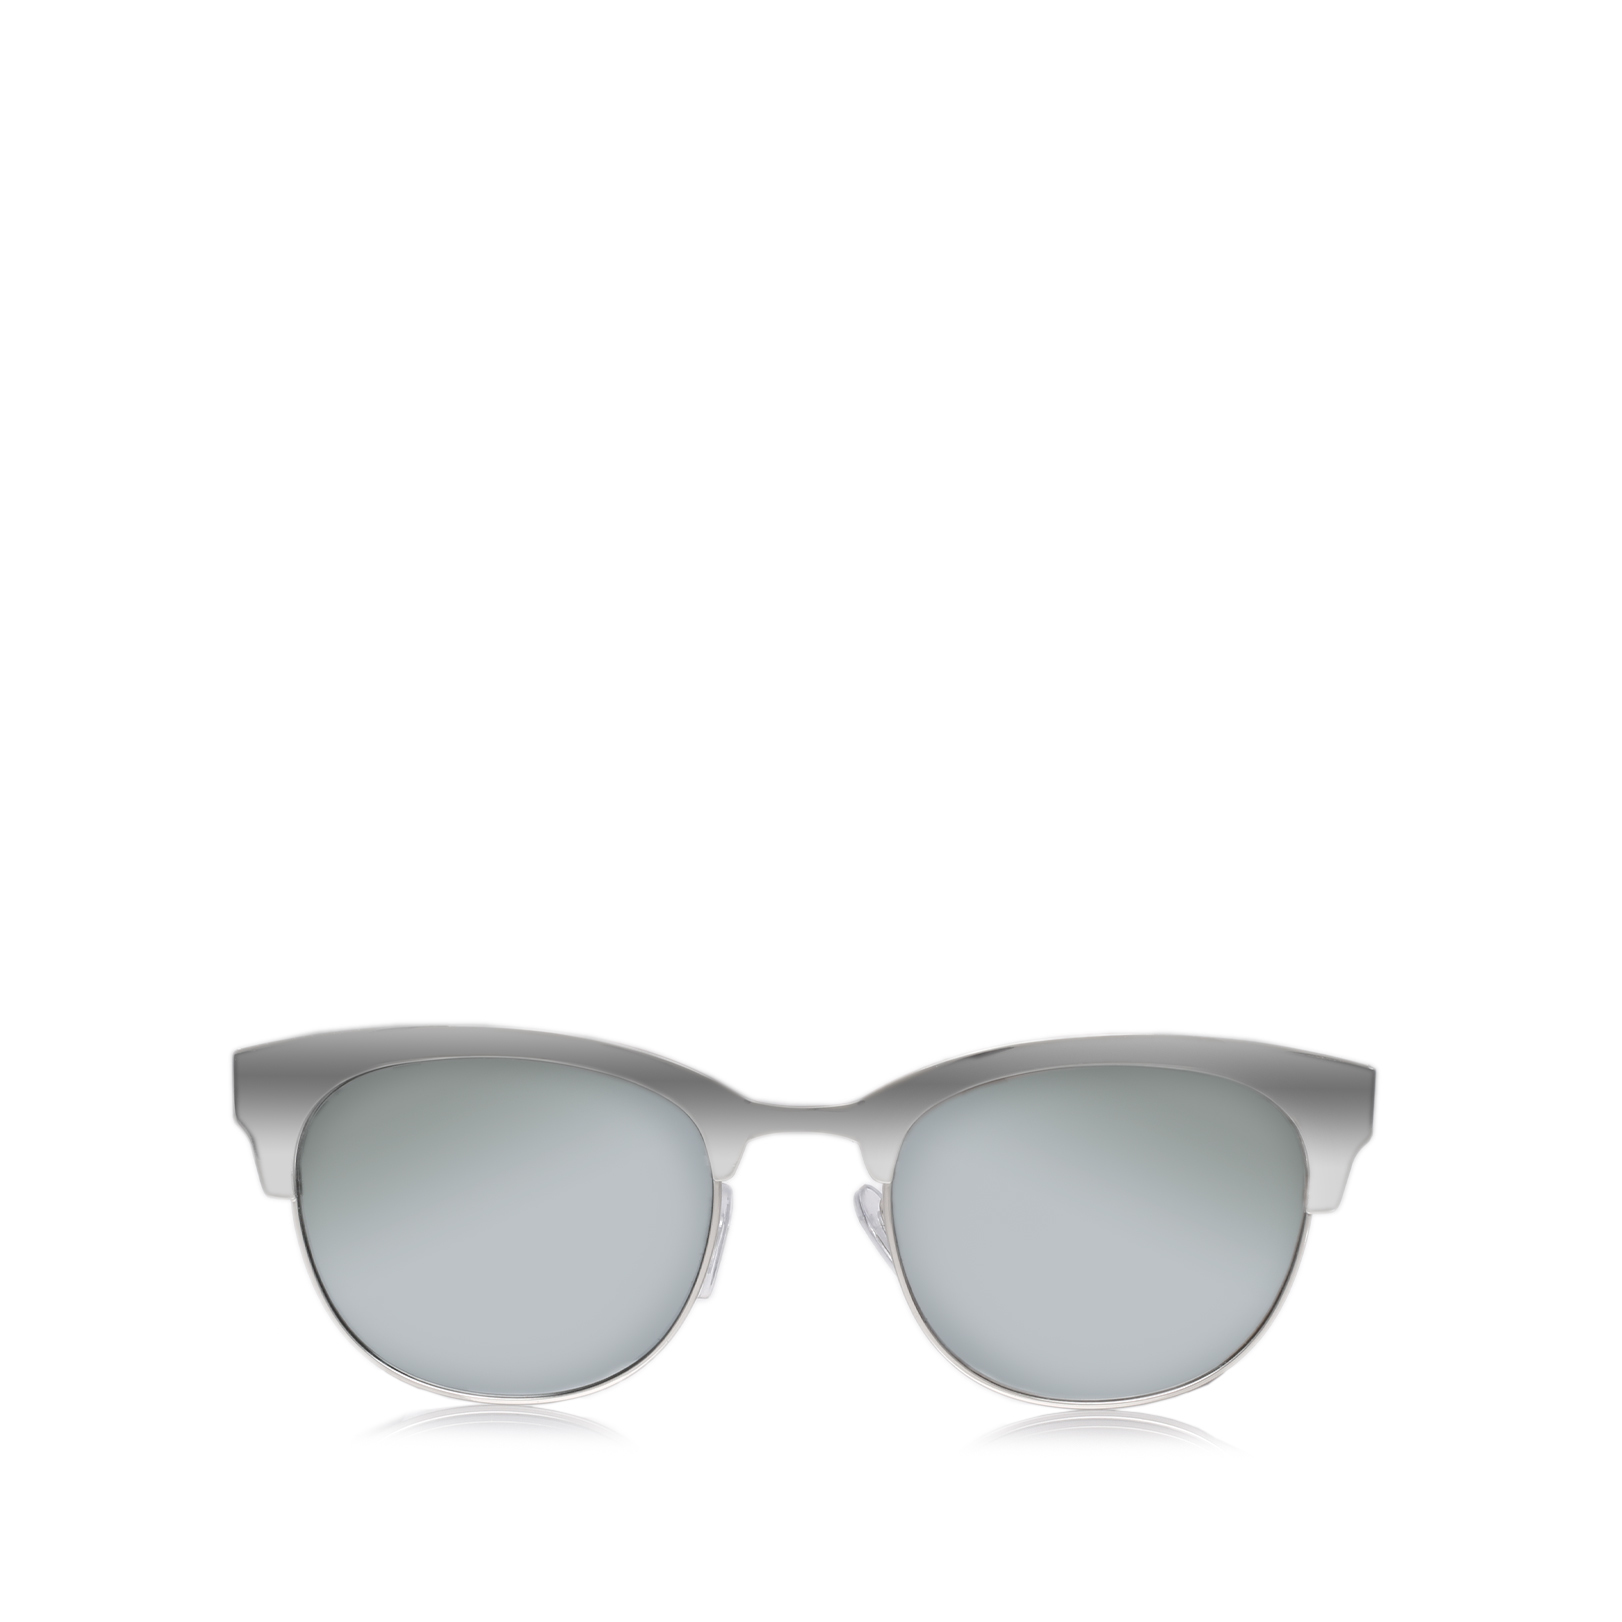 METAL CLUBMSTR SUNGLASSES